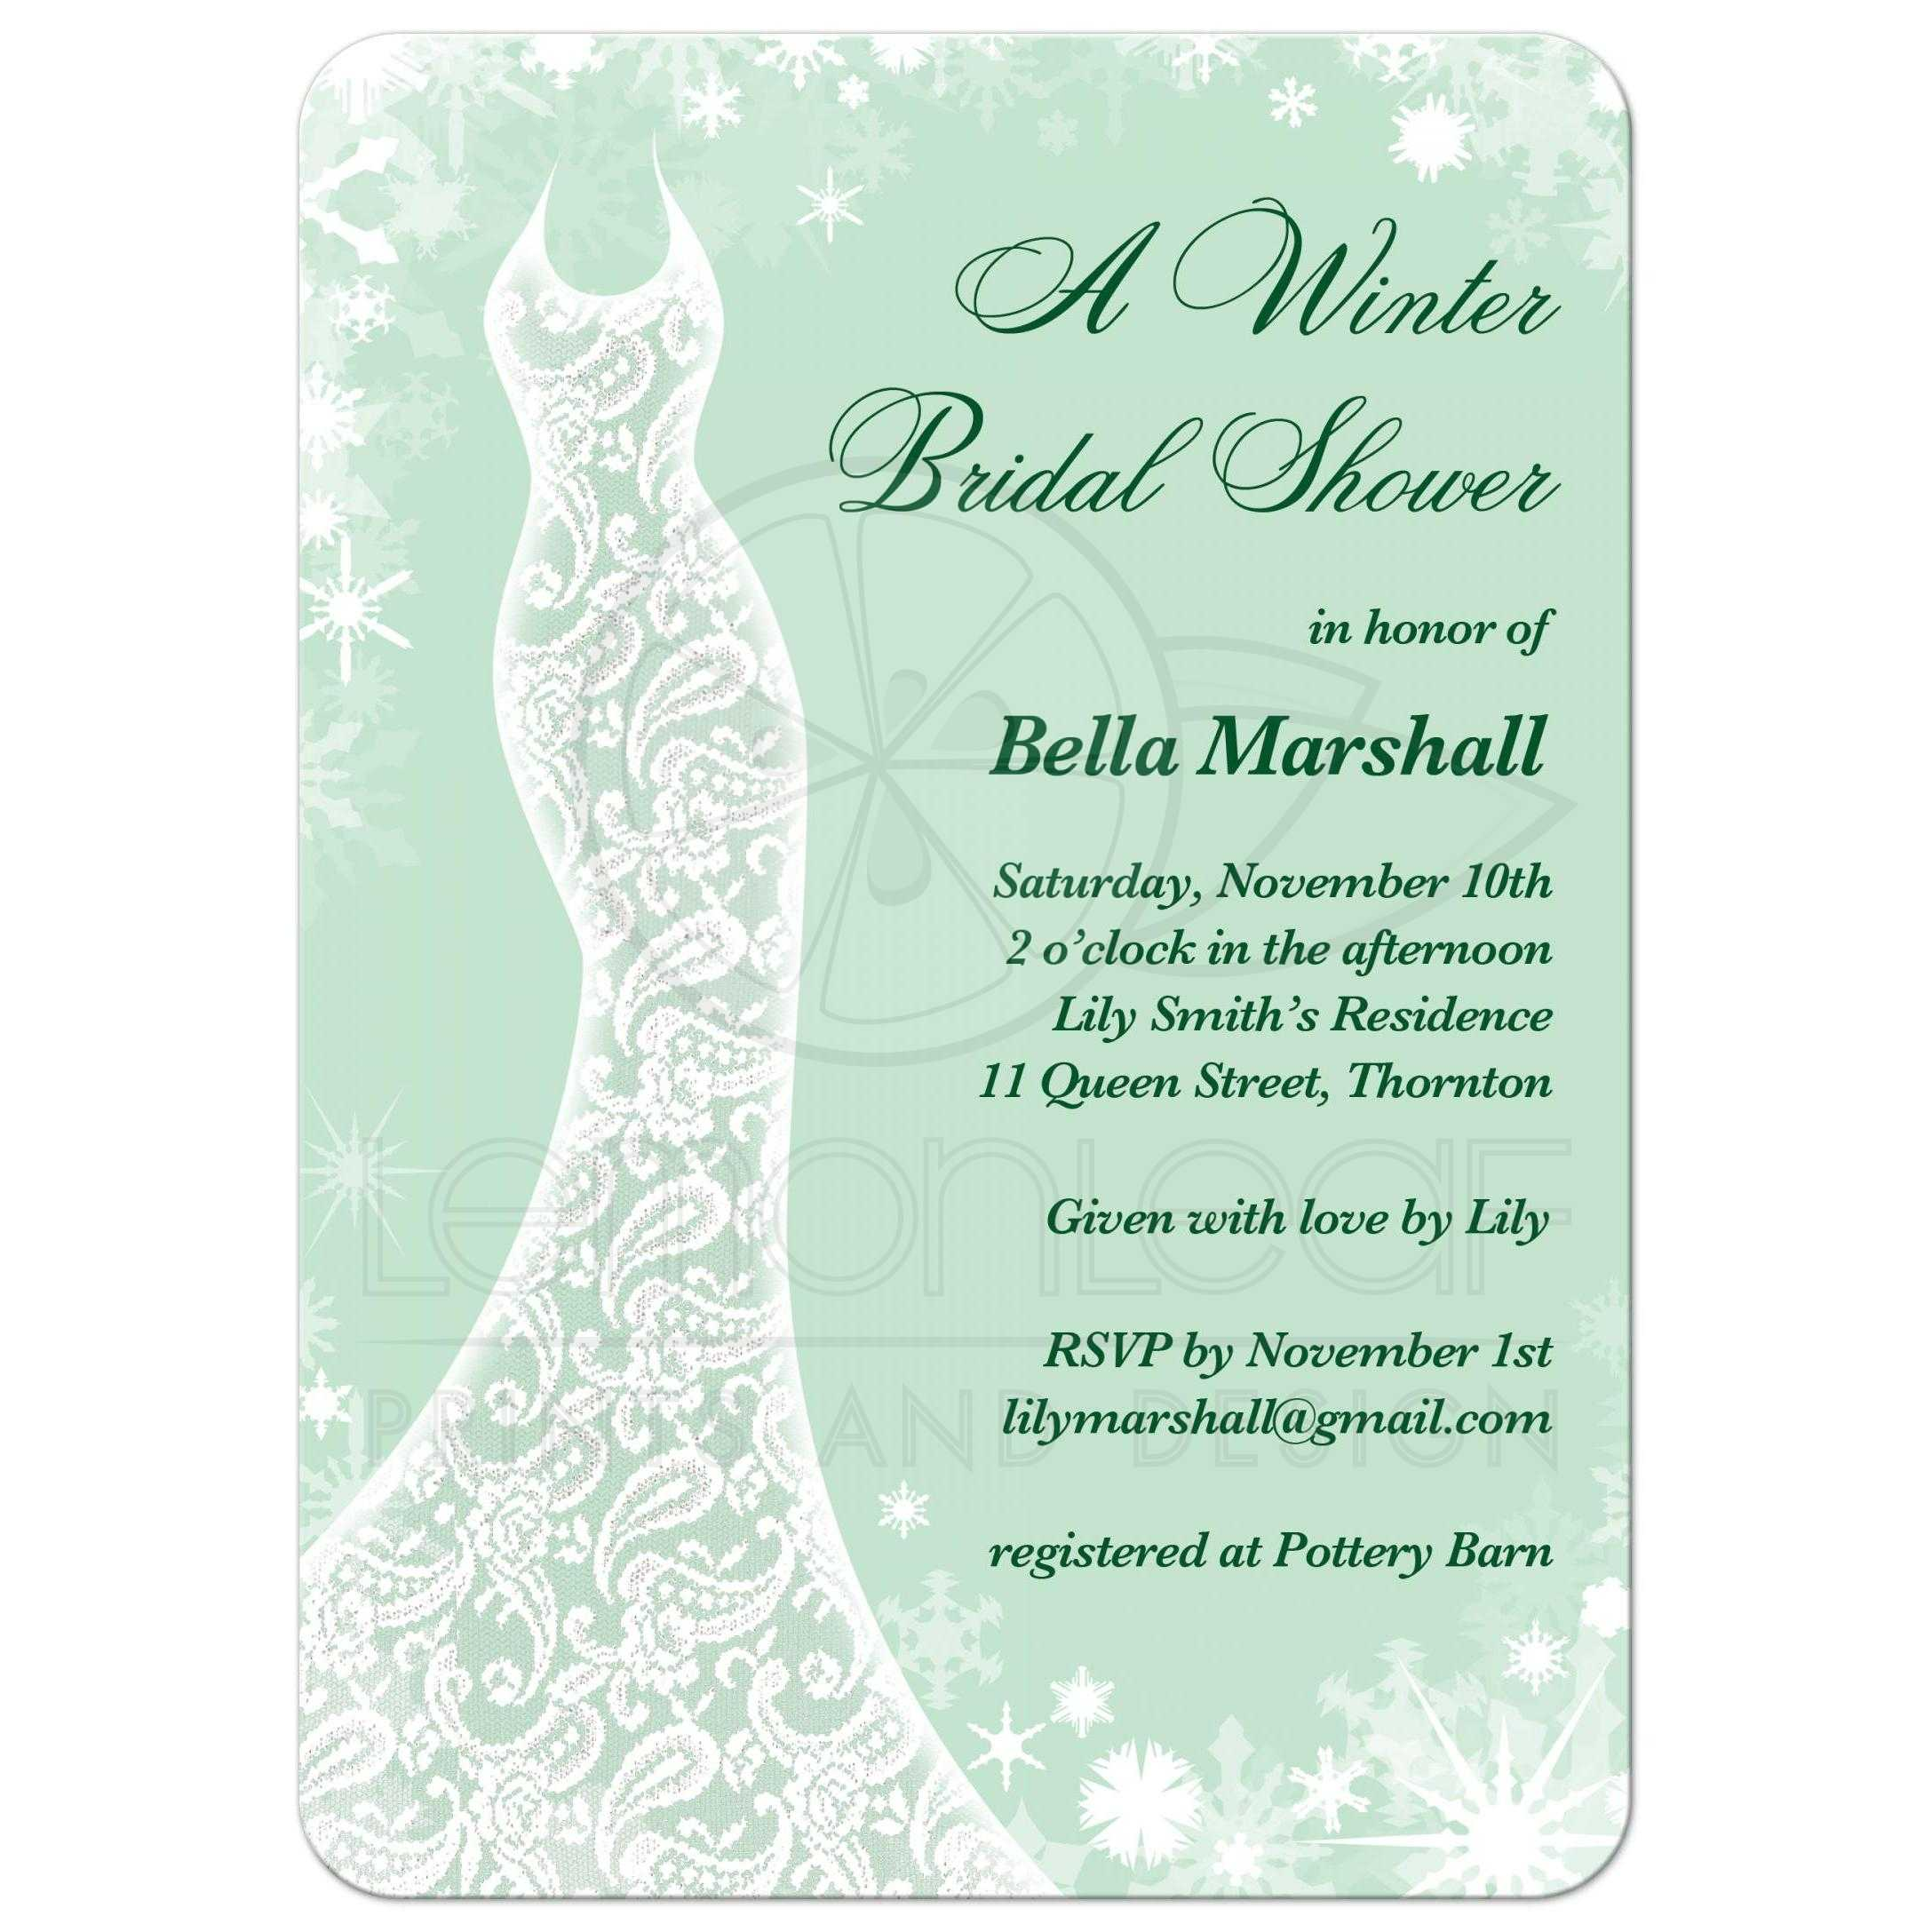 Bridal shower invitation beautiful winter mint for Mint and gold wedding dress